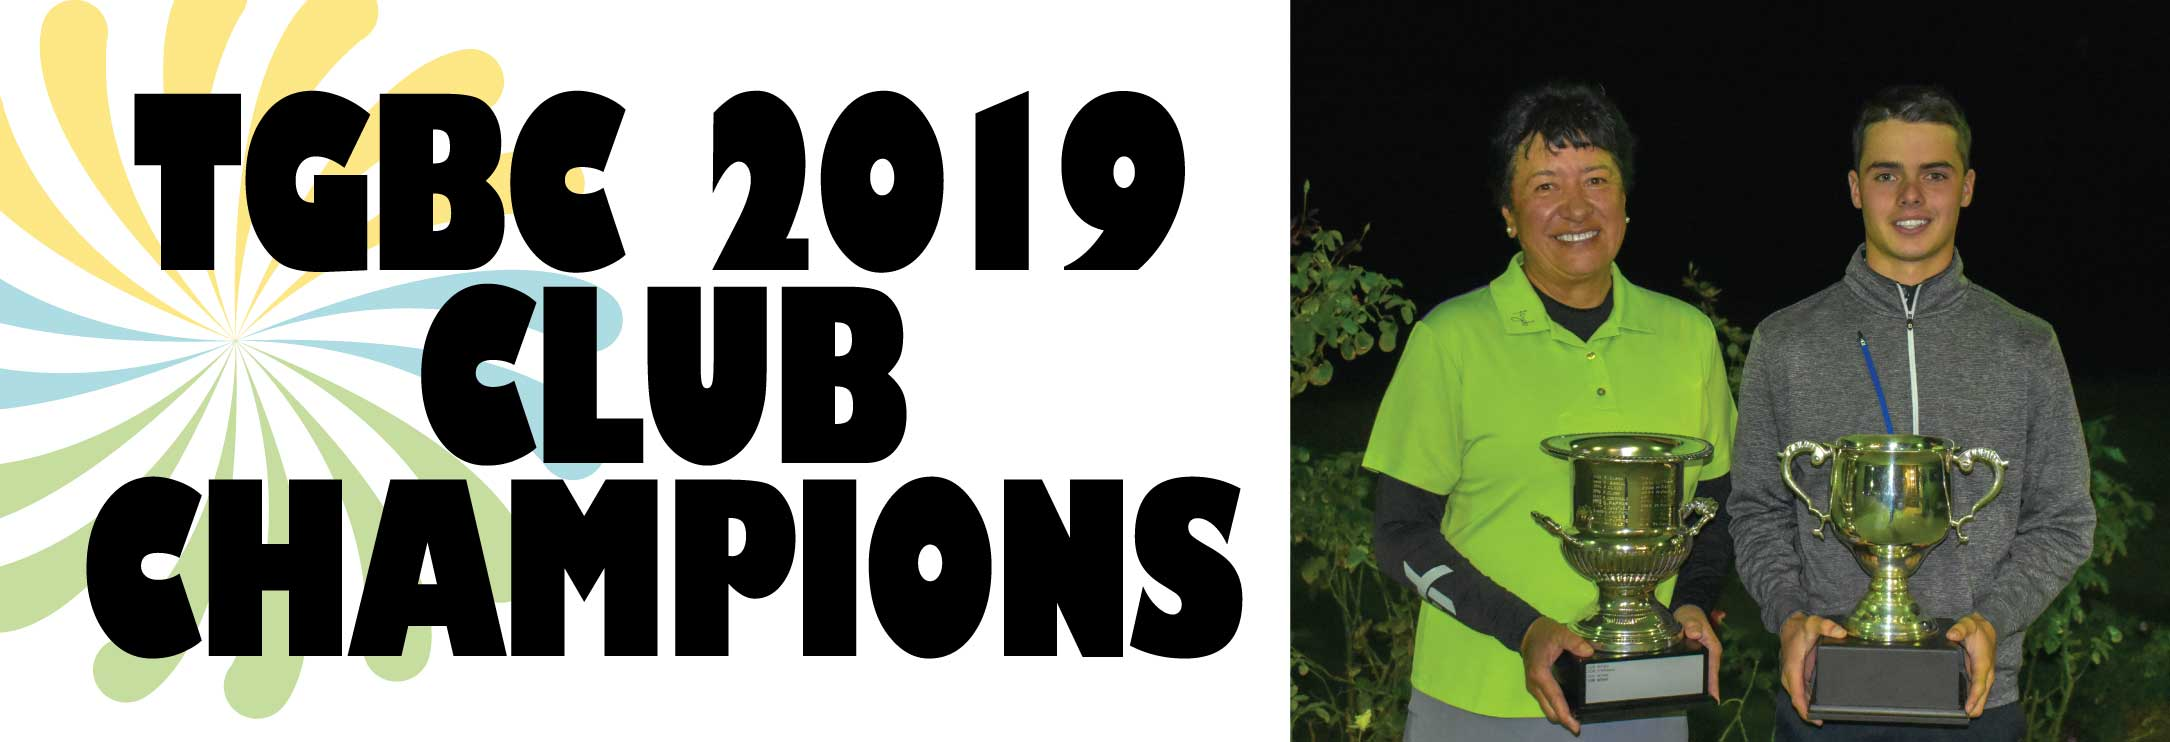 Club-Champs-2019-BANNER